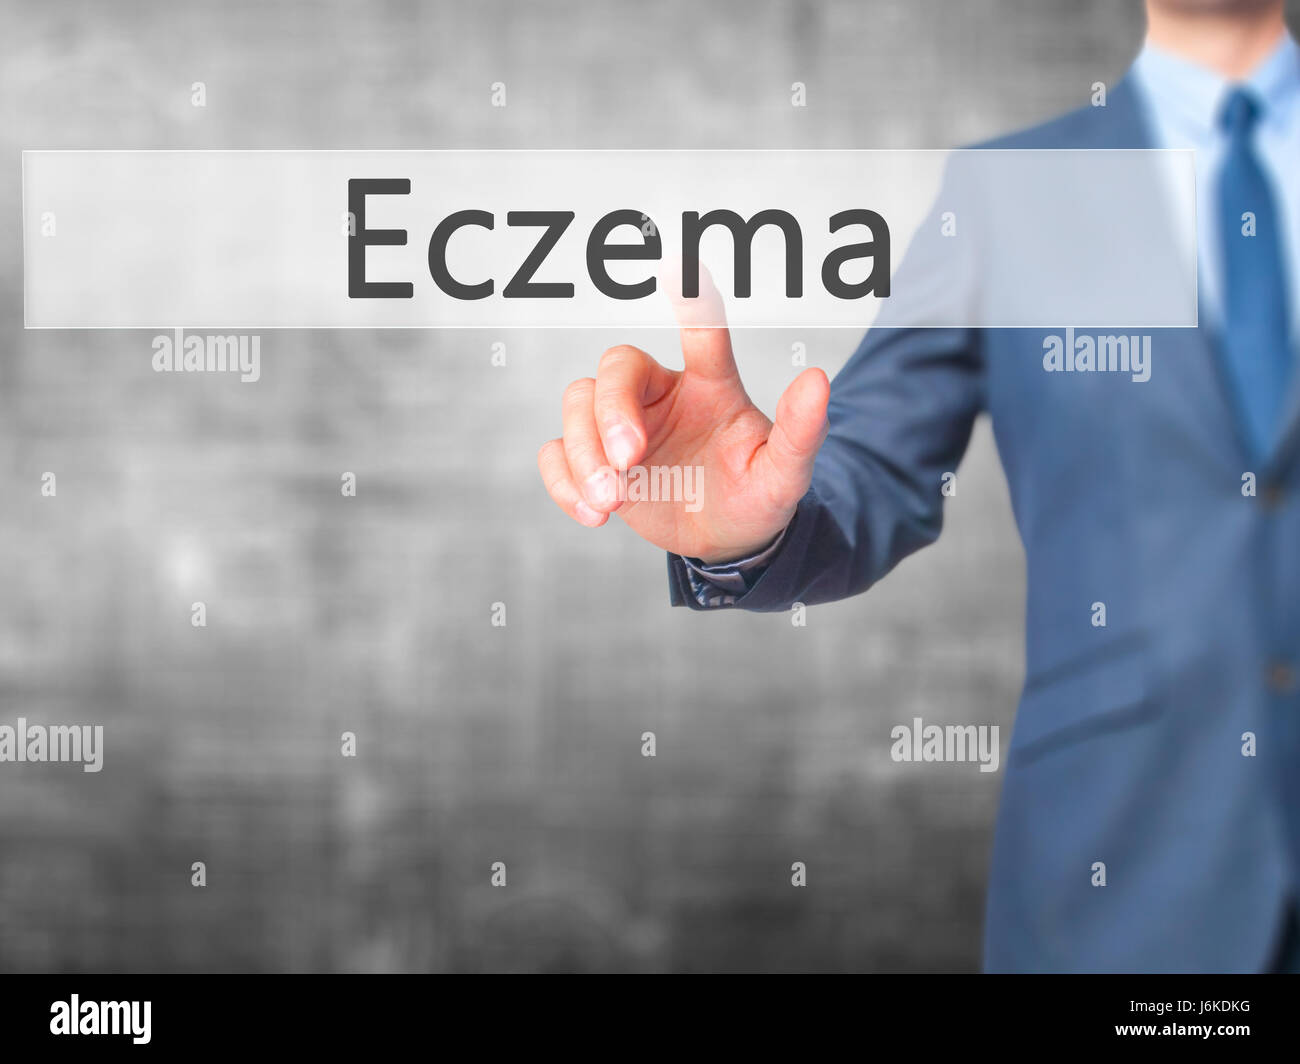 Vesicular Rash Stock Photos Images Alamy Human Skin As A Touch Screen Interface Eczema Businessman Hand Pressing Button On Business Technology Internet